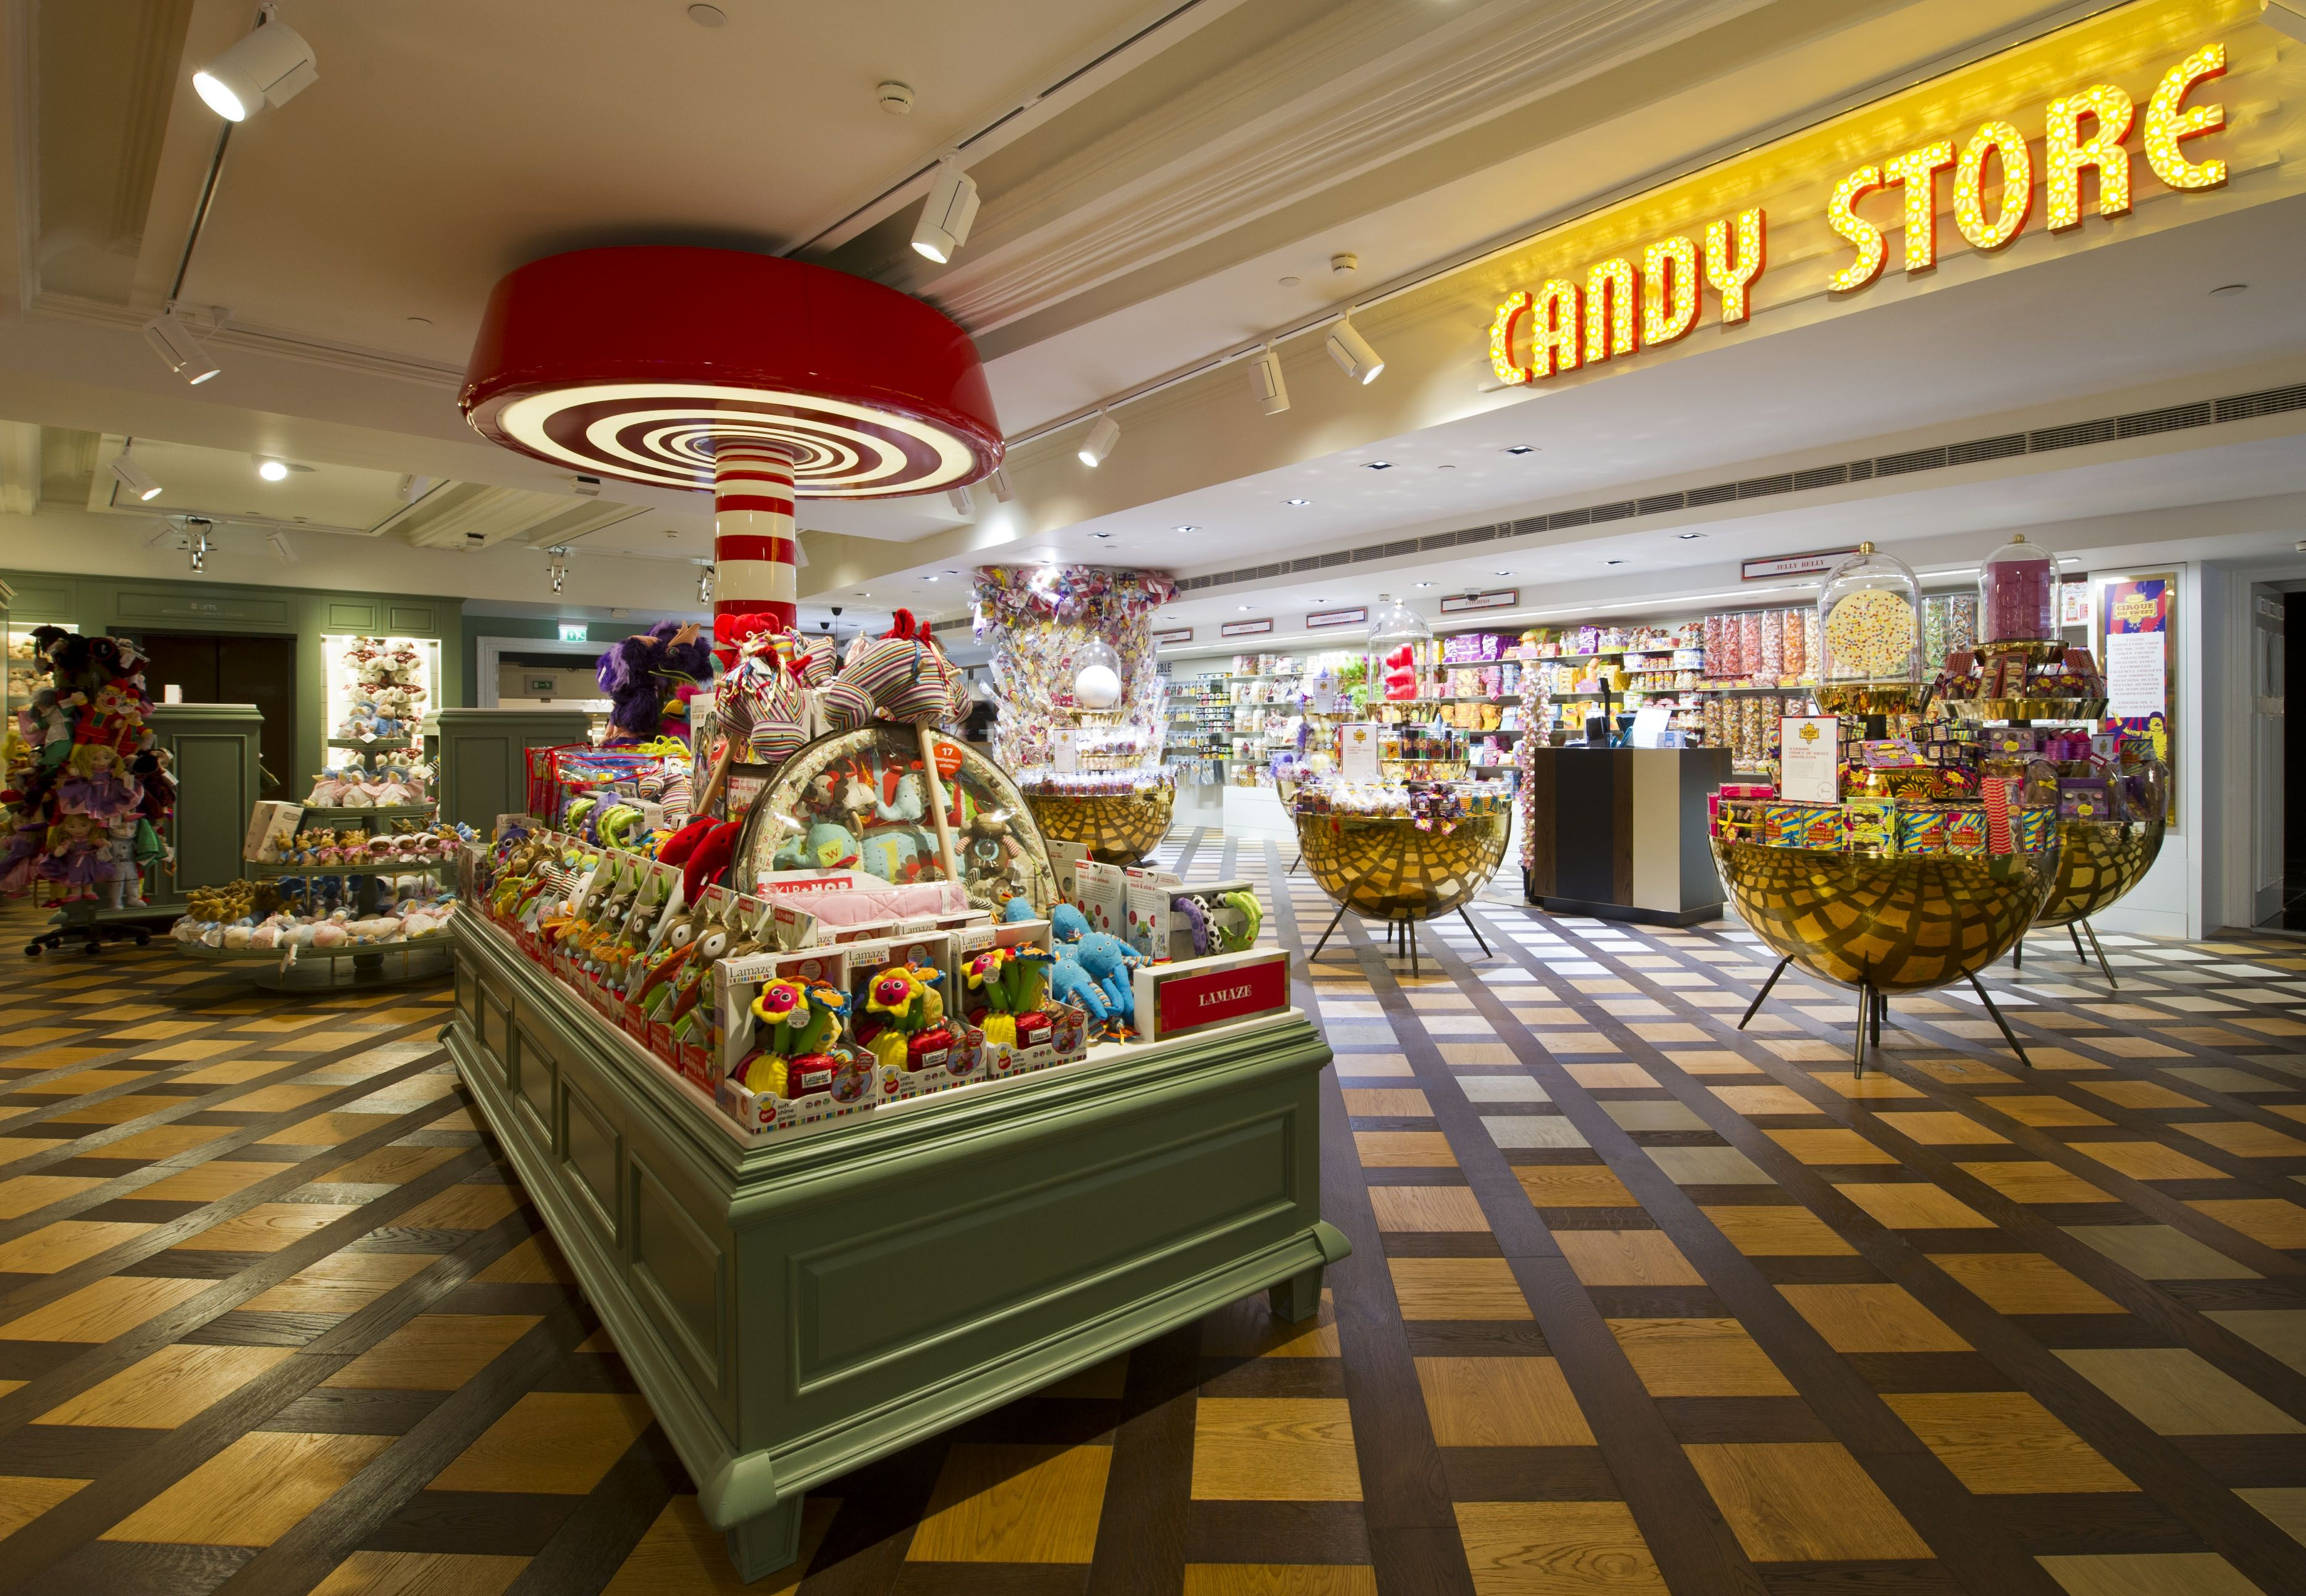 Candy Store 9cea34904